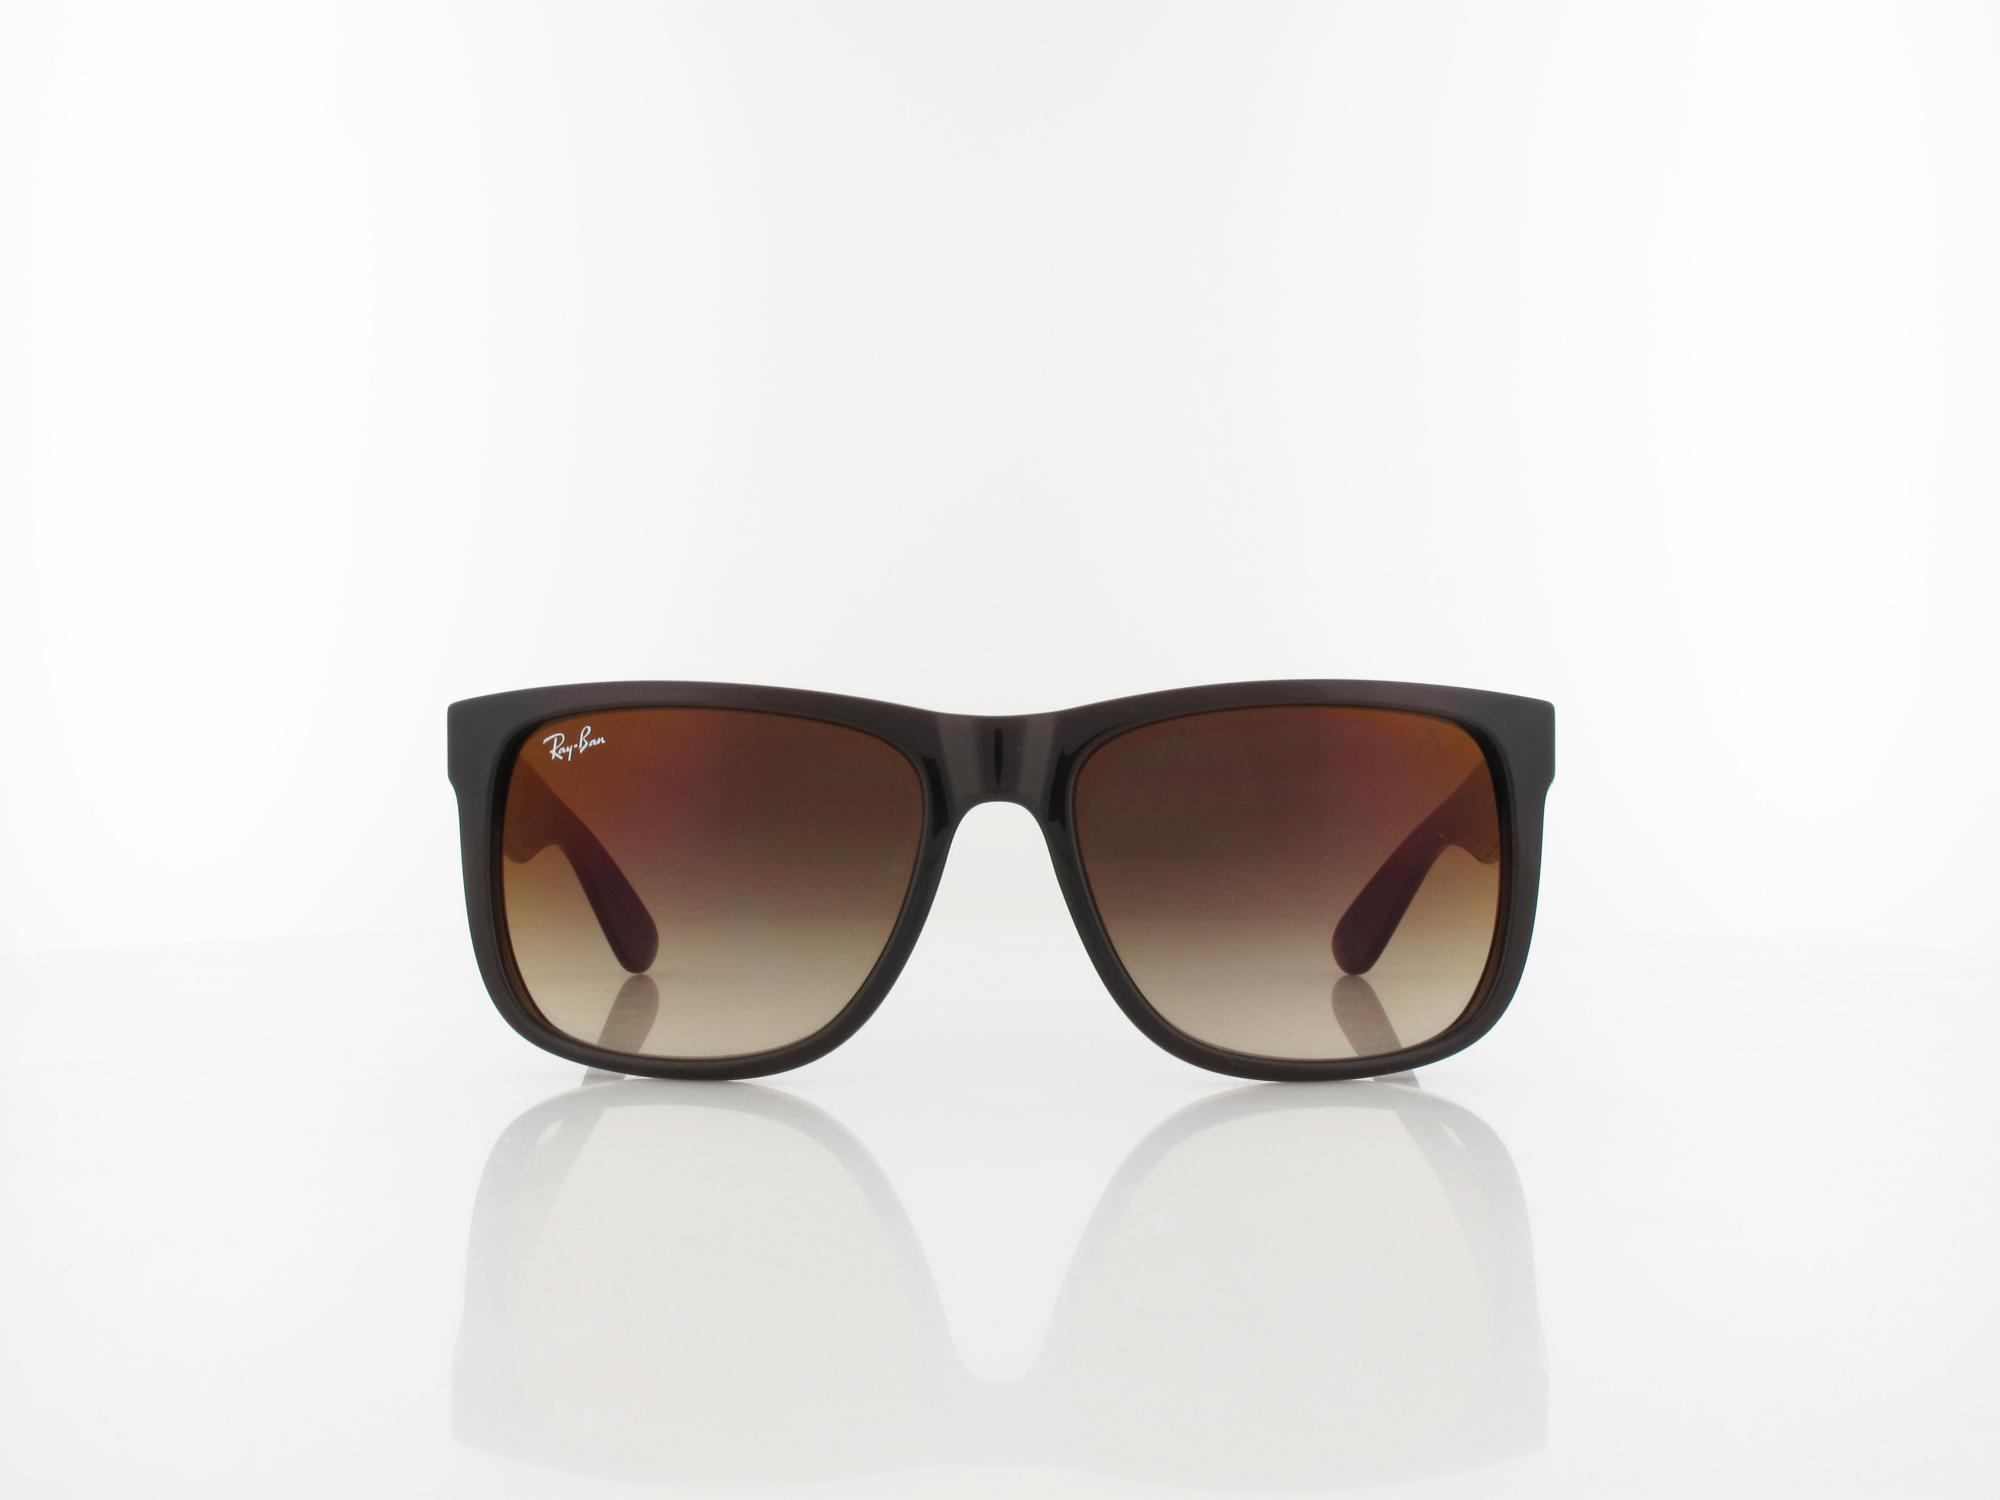 Ray Ban | JUSTIN RB4165 714/S0 55 | brown / brown gradient mirror red